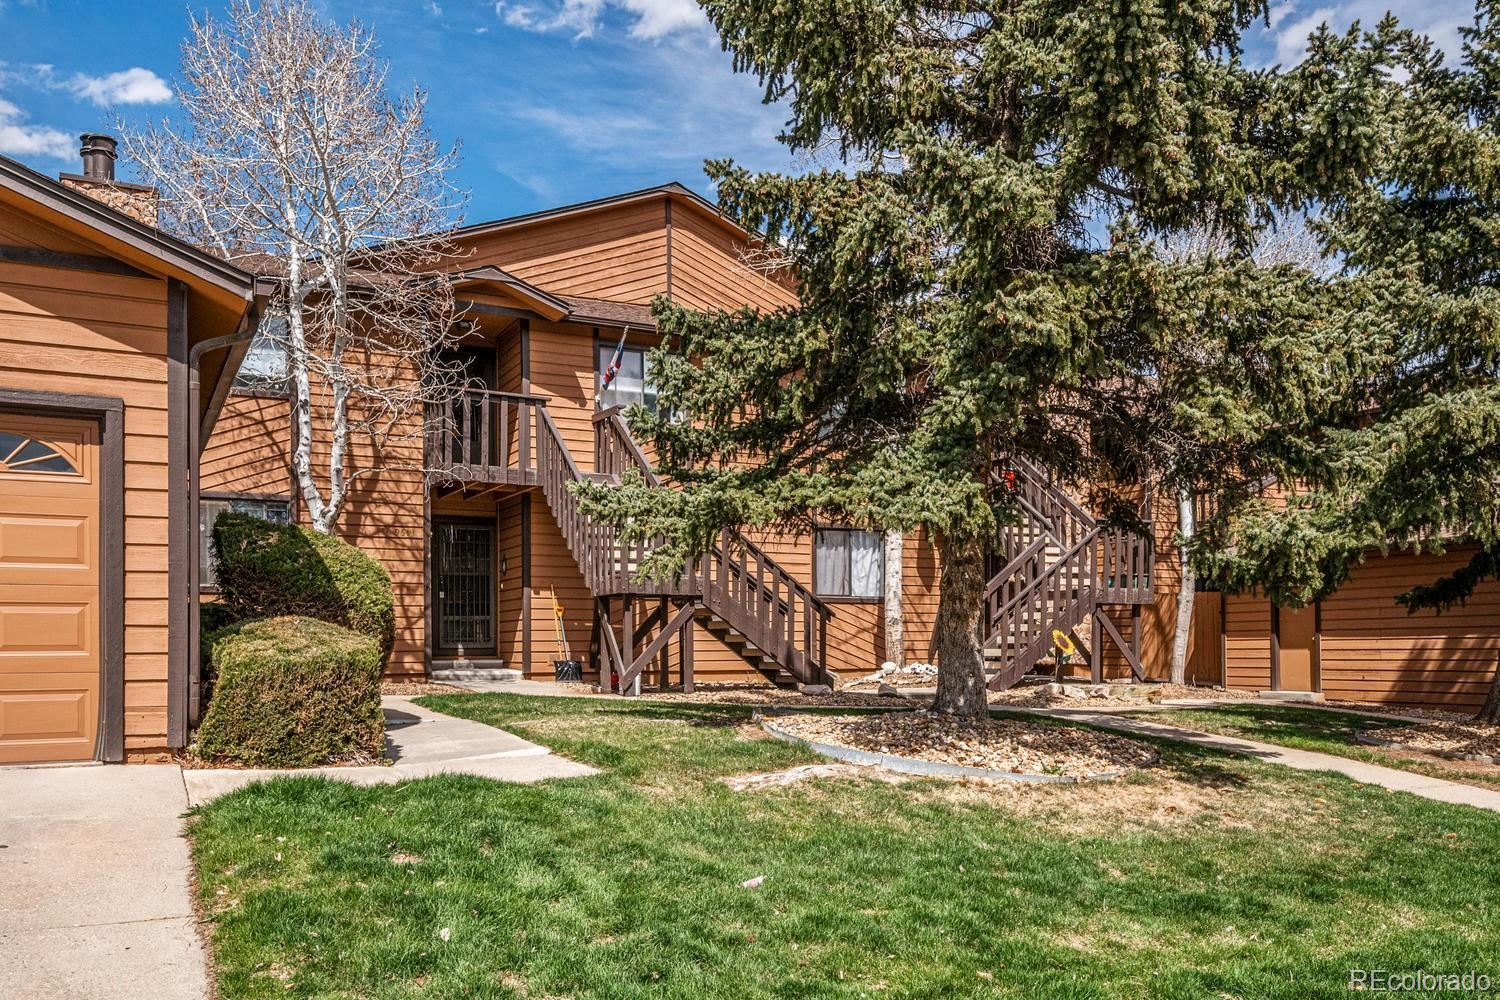 9511 W 89th Circle, Westminster, CO 80021 - #: 9355724